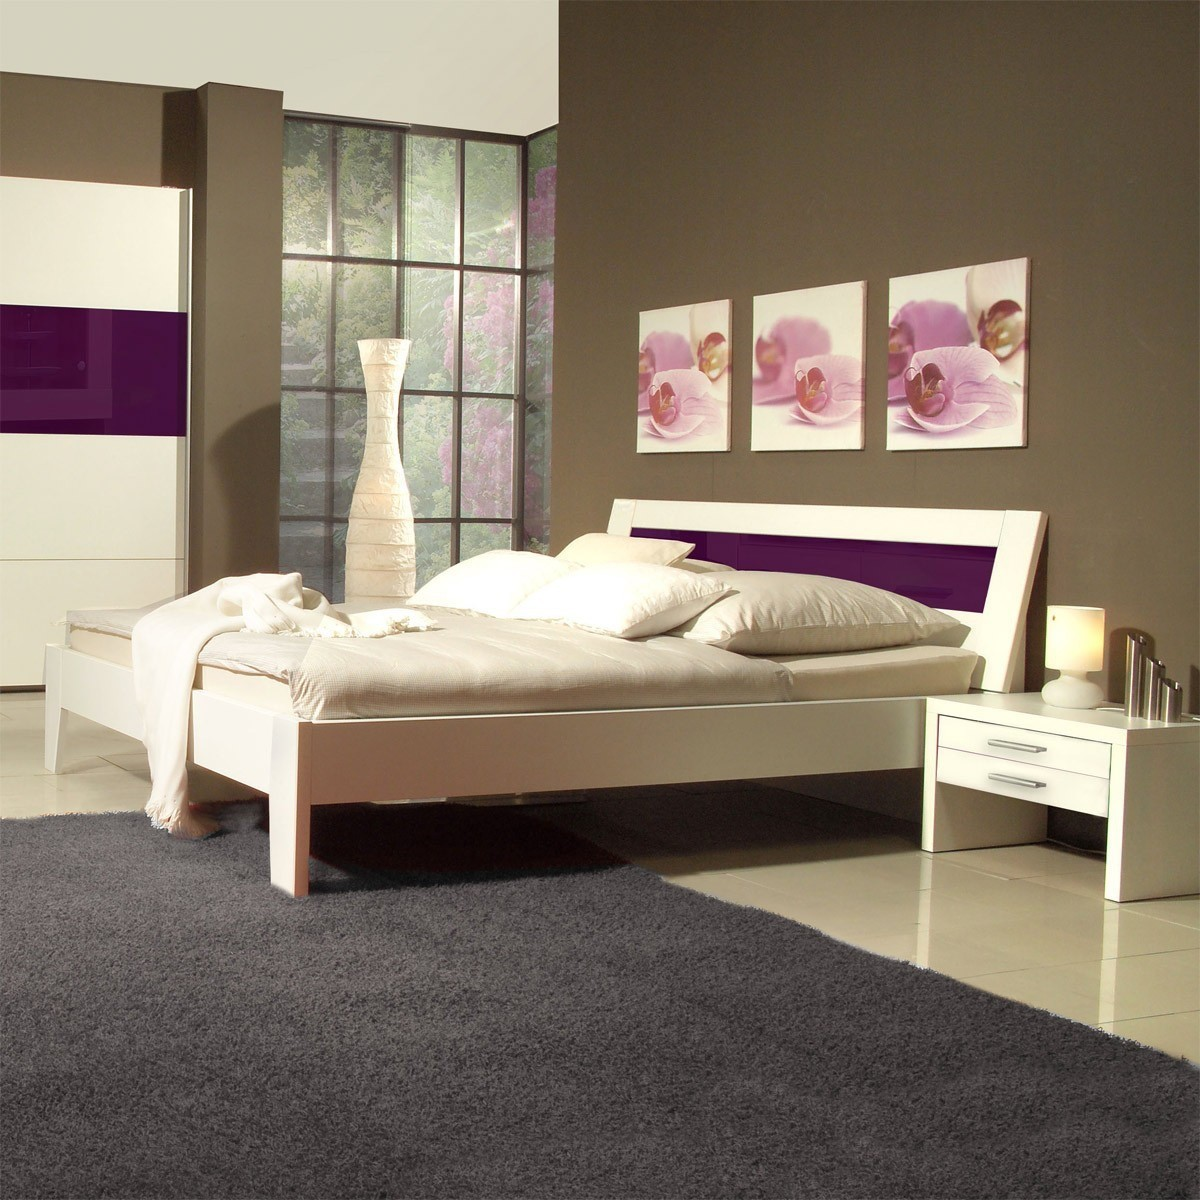 futonbett bett bettgestell 140x200 mit nachtkonsolen in wei lila ebay. Black Bedroom Furniture Sets. Home Design Ideas